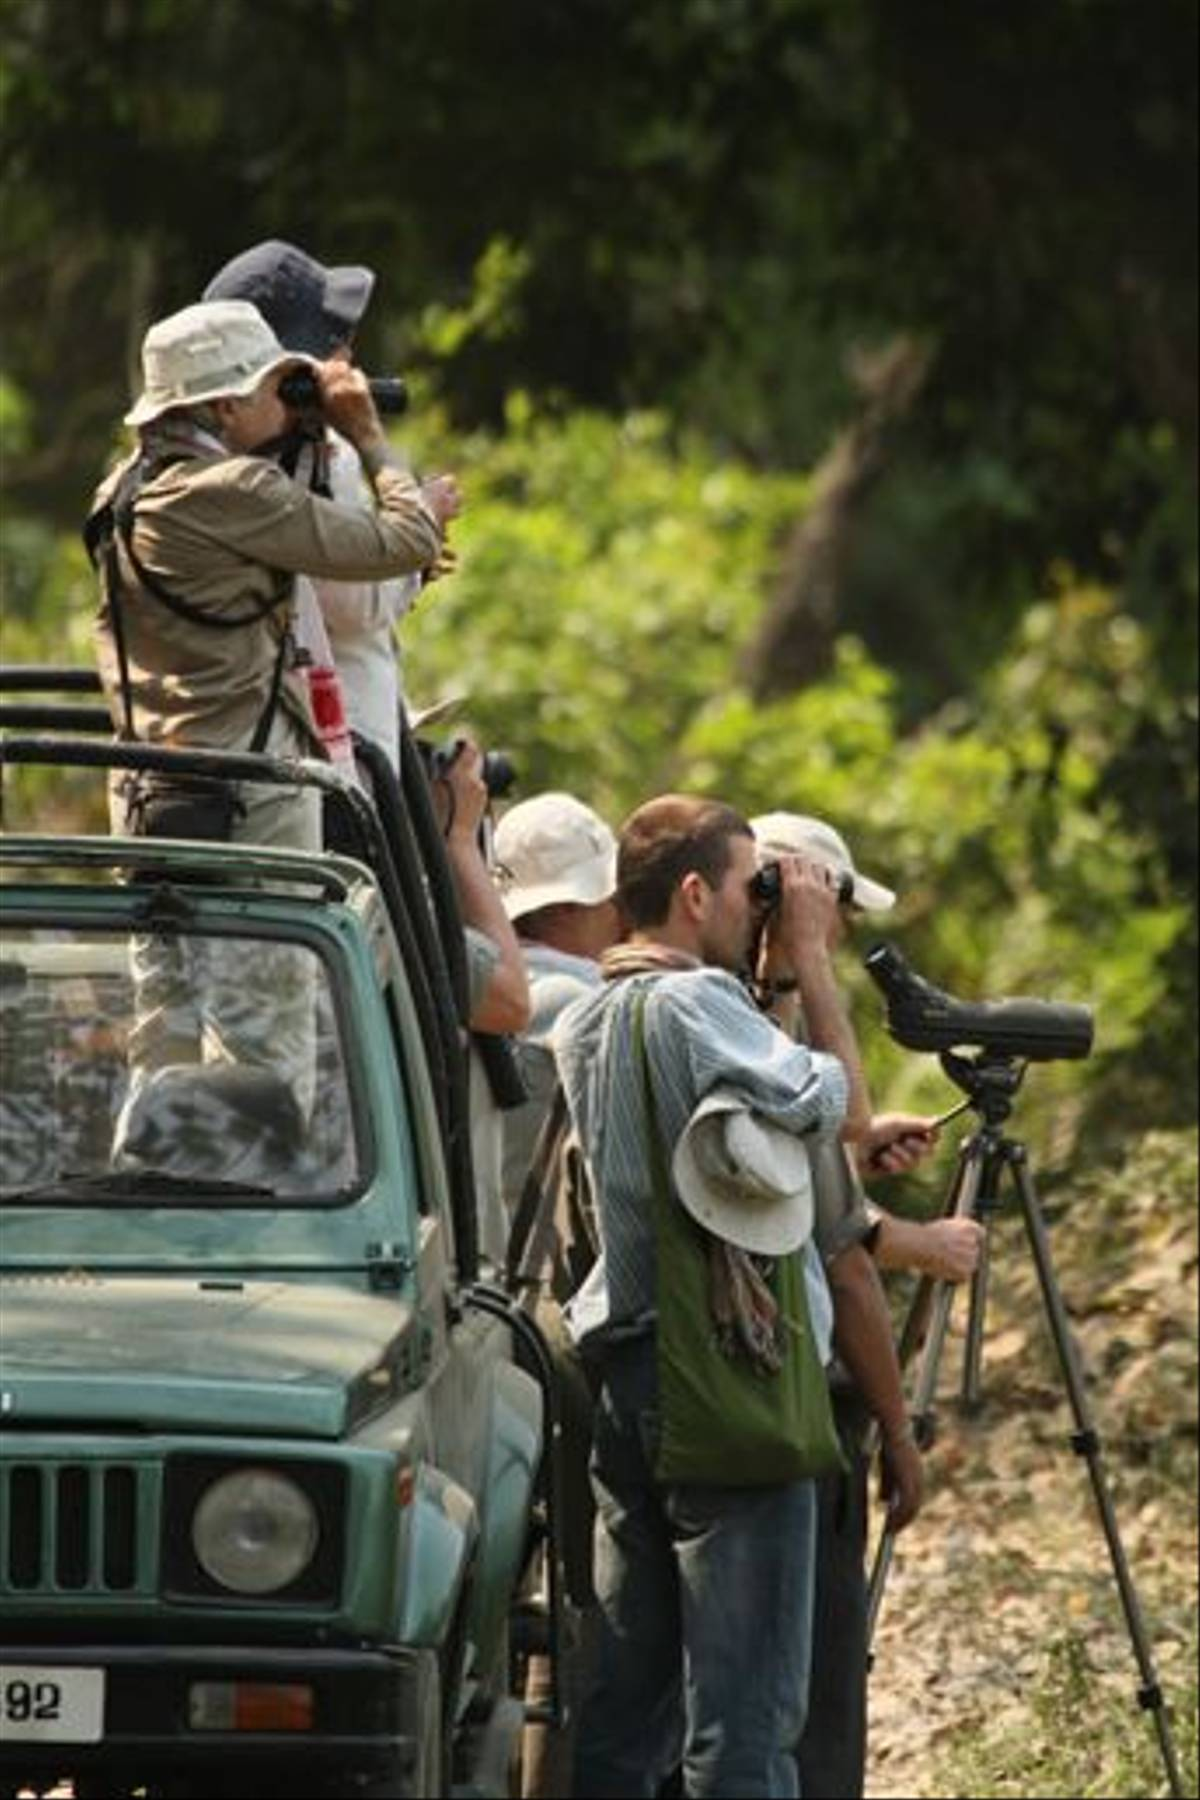 Naturetrek group in Kaziranga (Bret Charman)